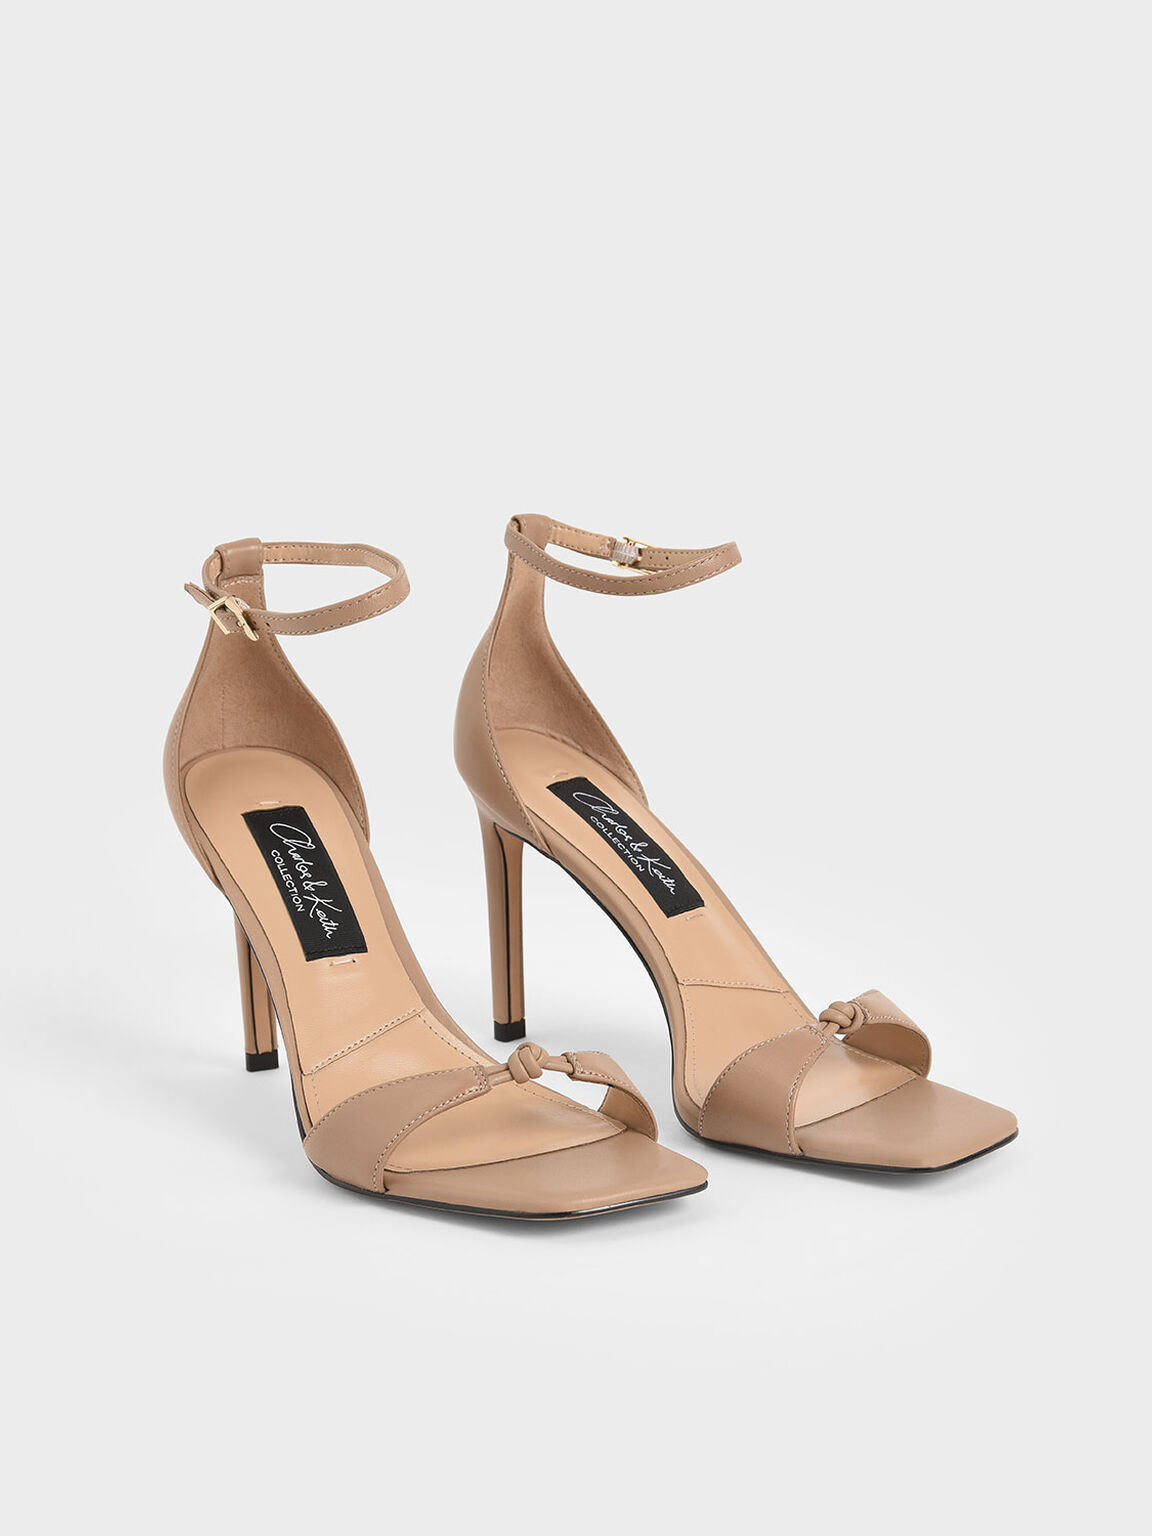 Leather Knot Detail Heeled Sandals, Nude, hi-res